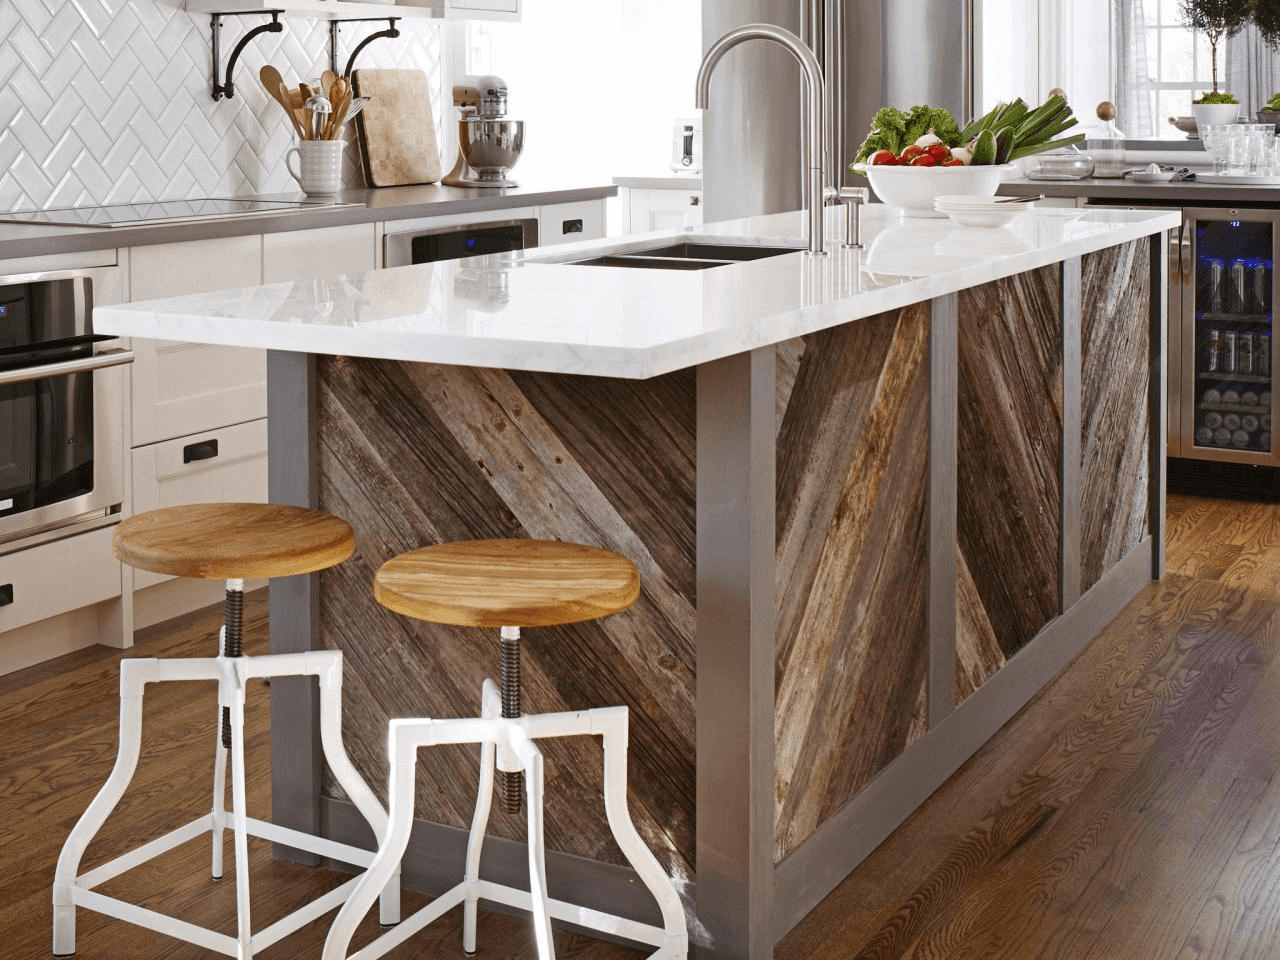 Cherry wood kitchen island with sink and dishwasher design ideas